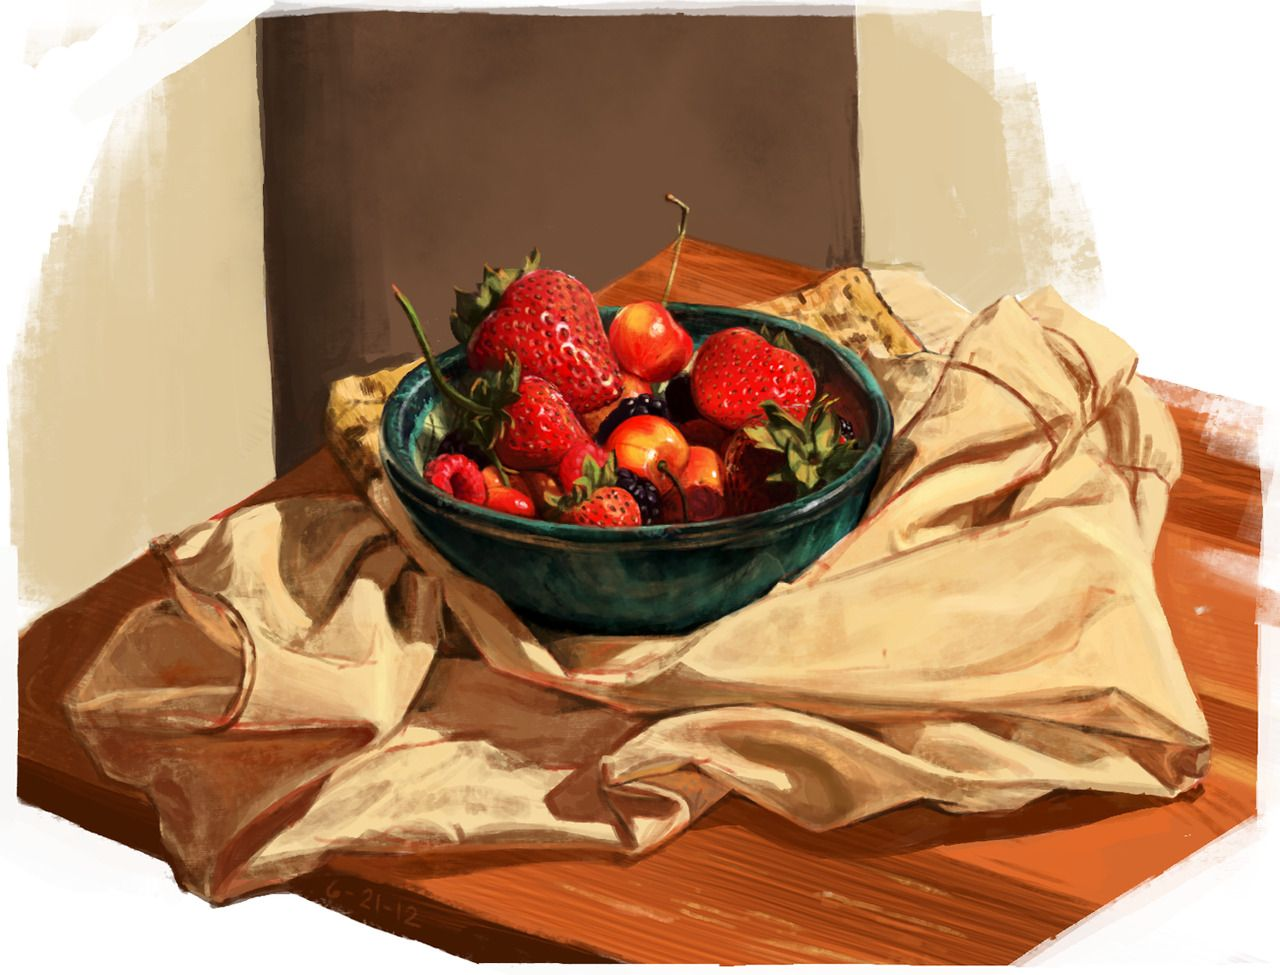 Fruit Life.The temptation to eat this before I finished drawing it was excruciating. - #art #digital #Fruit #life #Still